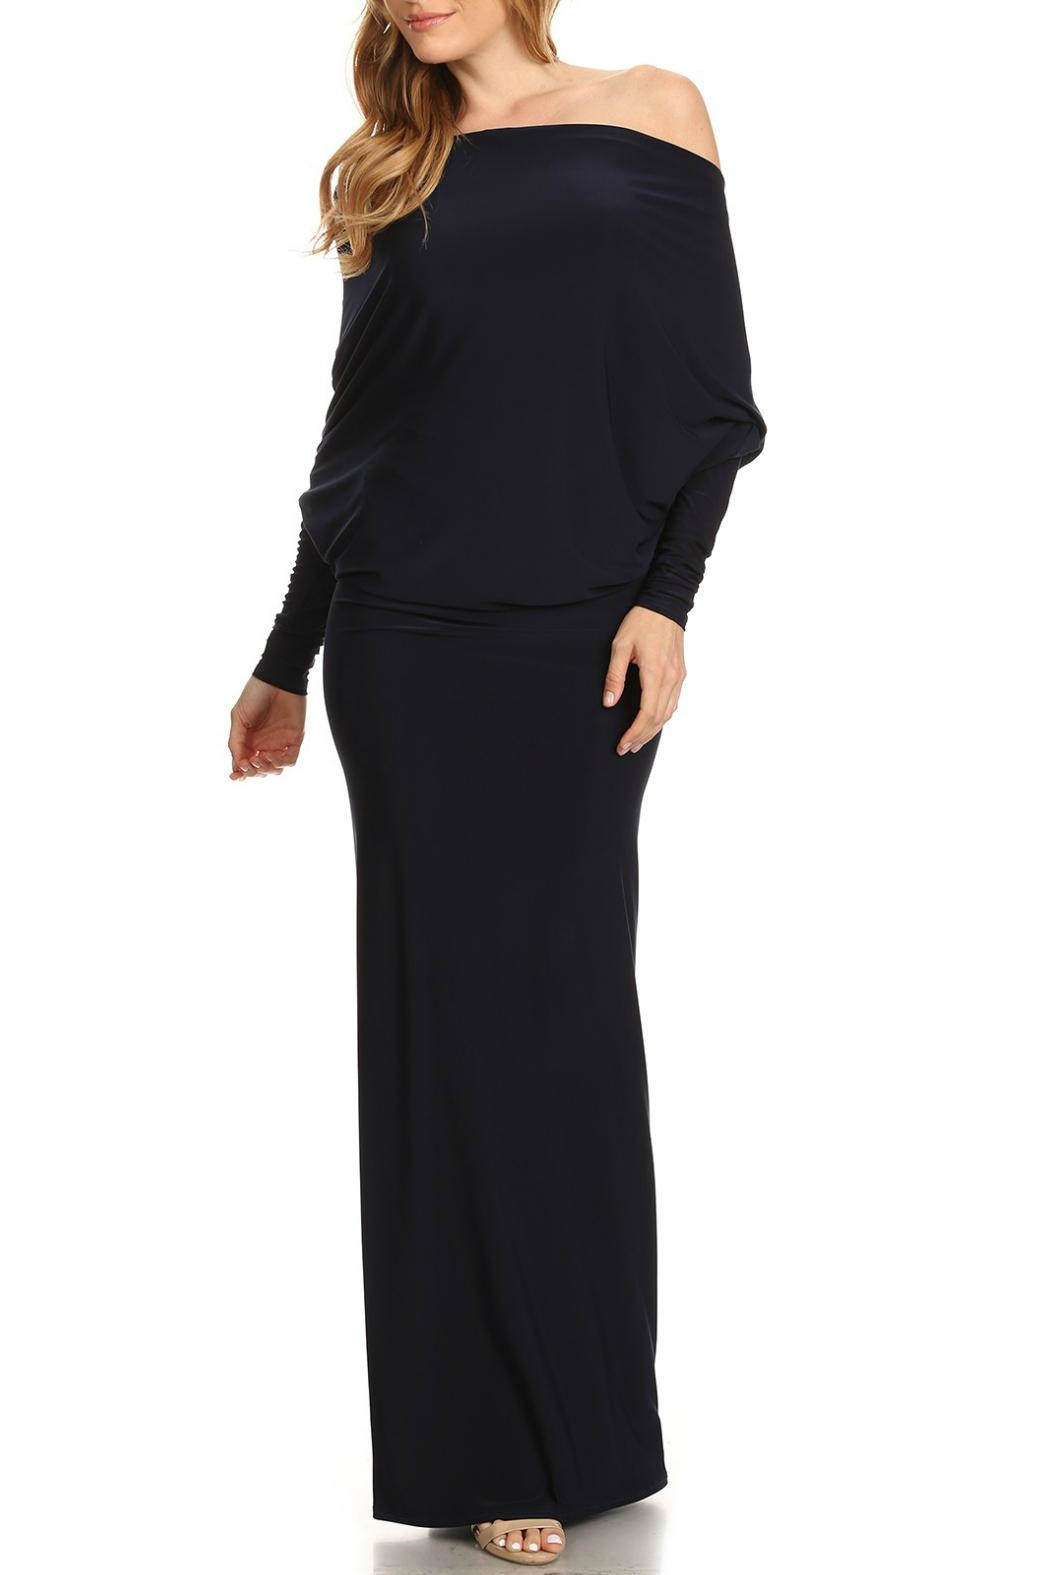 Karen T Designs Low Back Maxi - Main Image